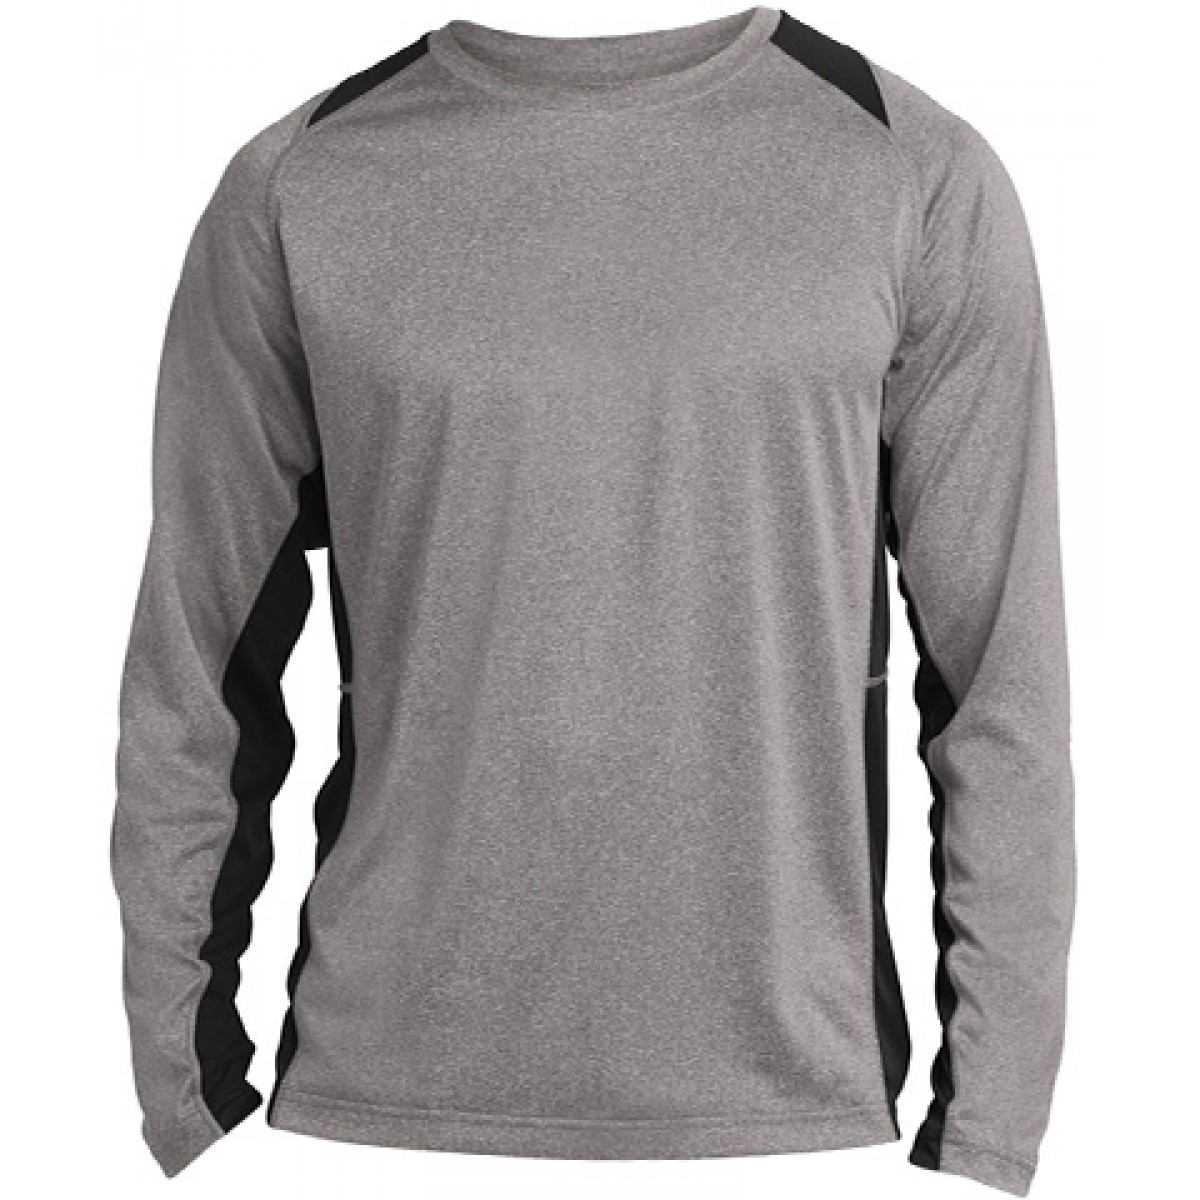 Long Sleeve Heather Colorblock Contender-Gray/Black-M